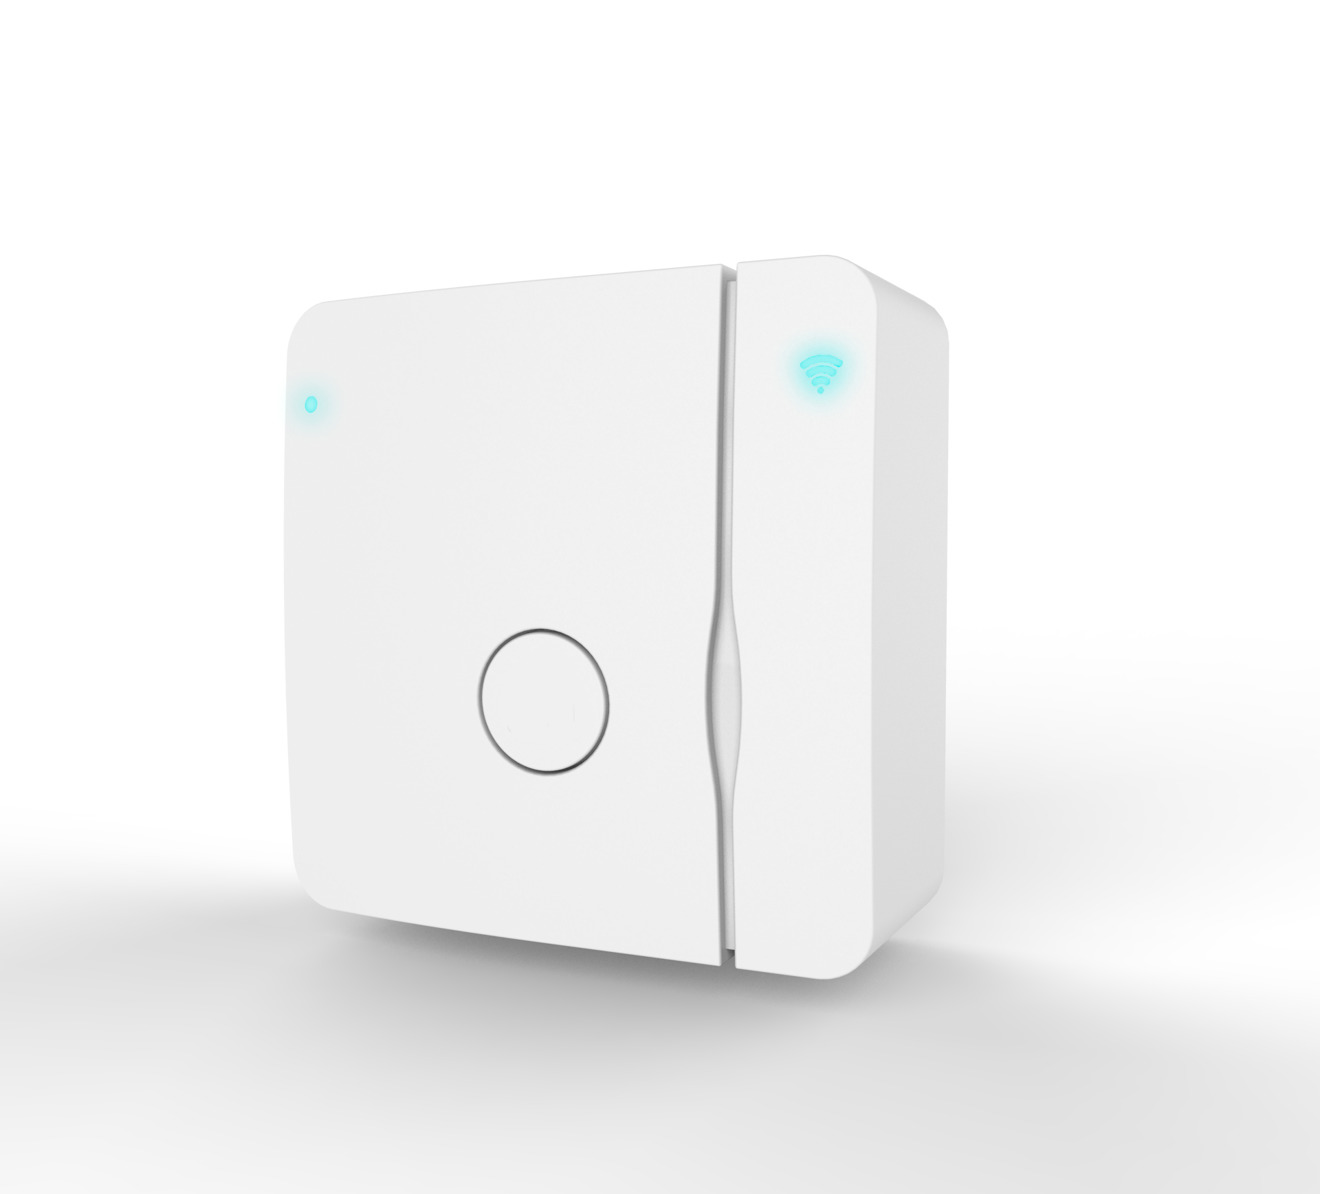 Connectsense Bluetooth Extender Lets You Control Ble Apple Homekit Accessories Away From Home Appleinsider